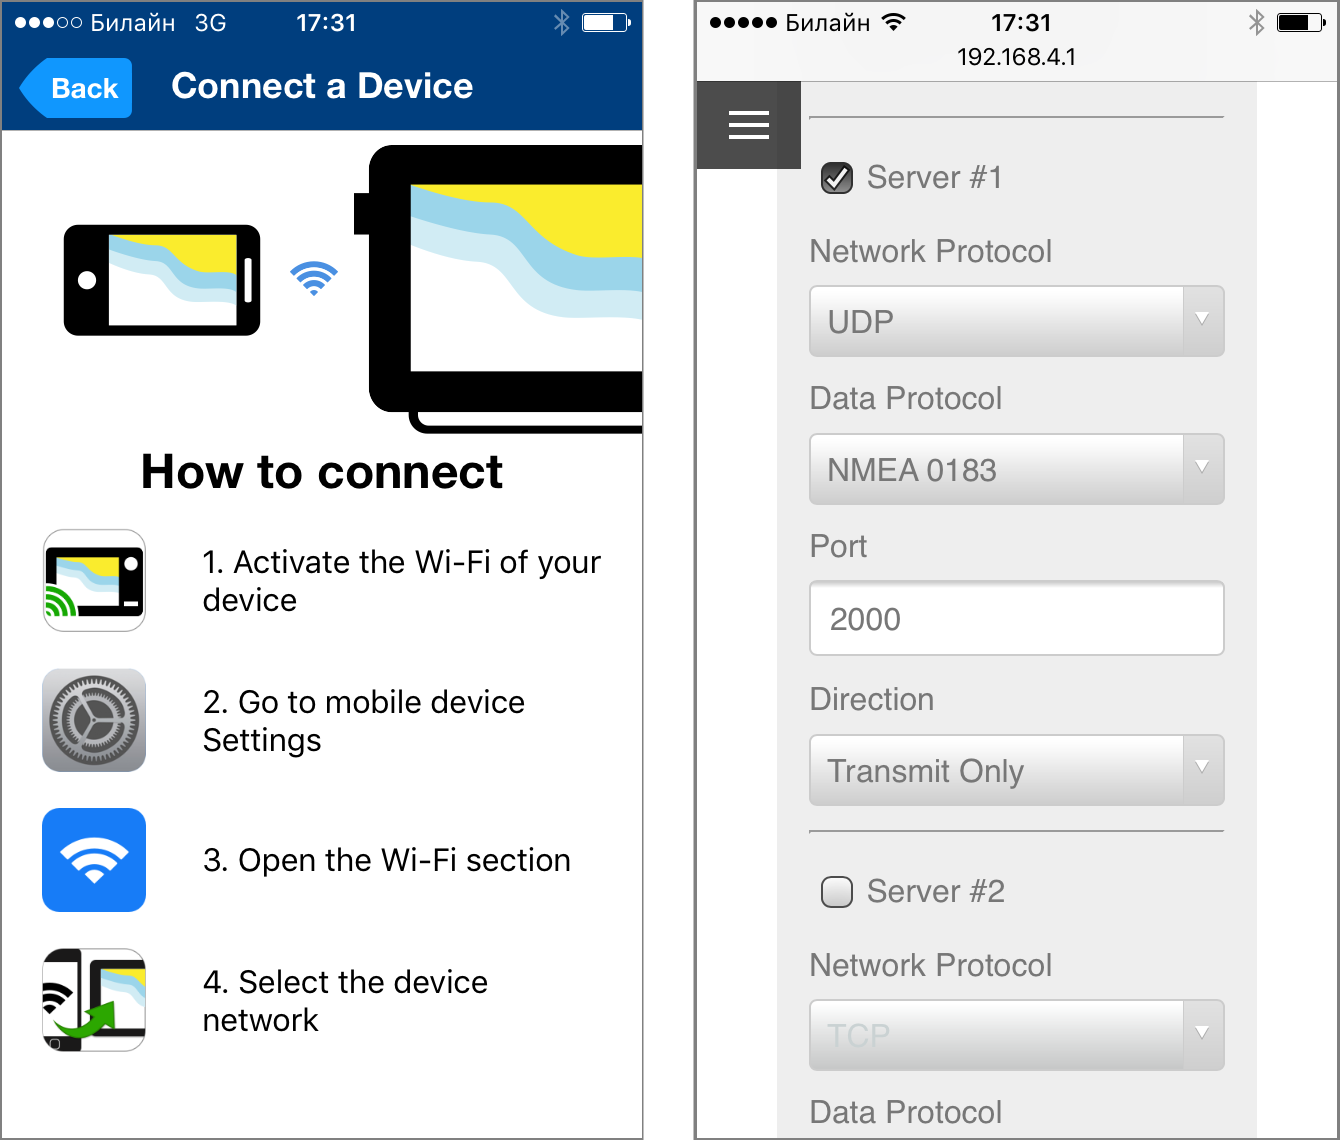 Screenshots of Navionics App (left) and Wi-Fi Gateway (right) settings, click to enlarge